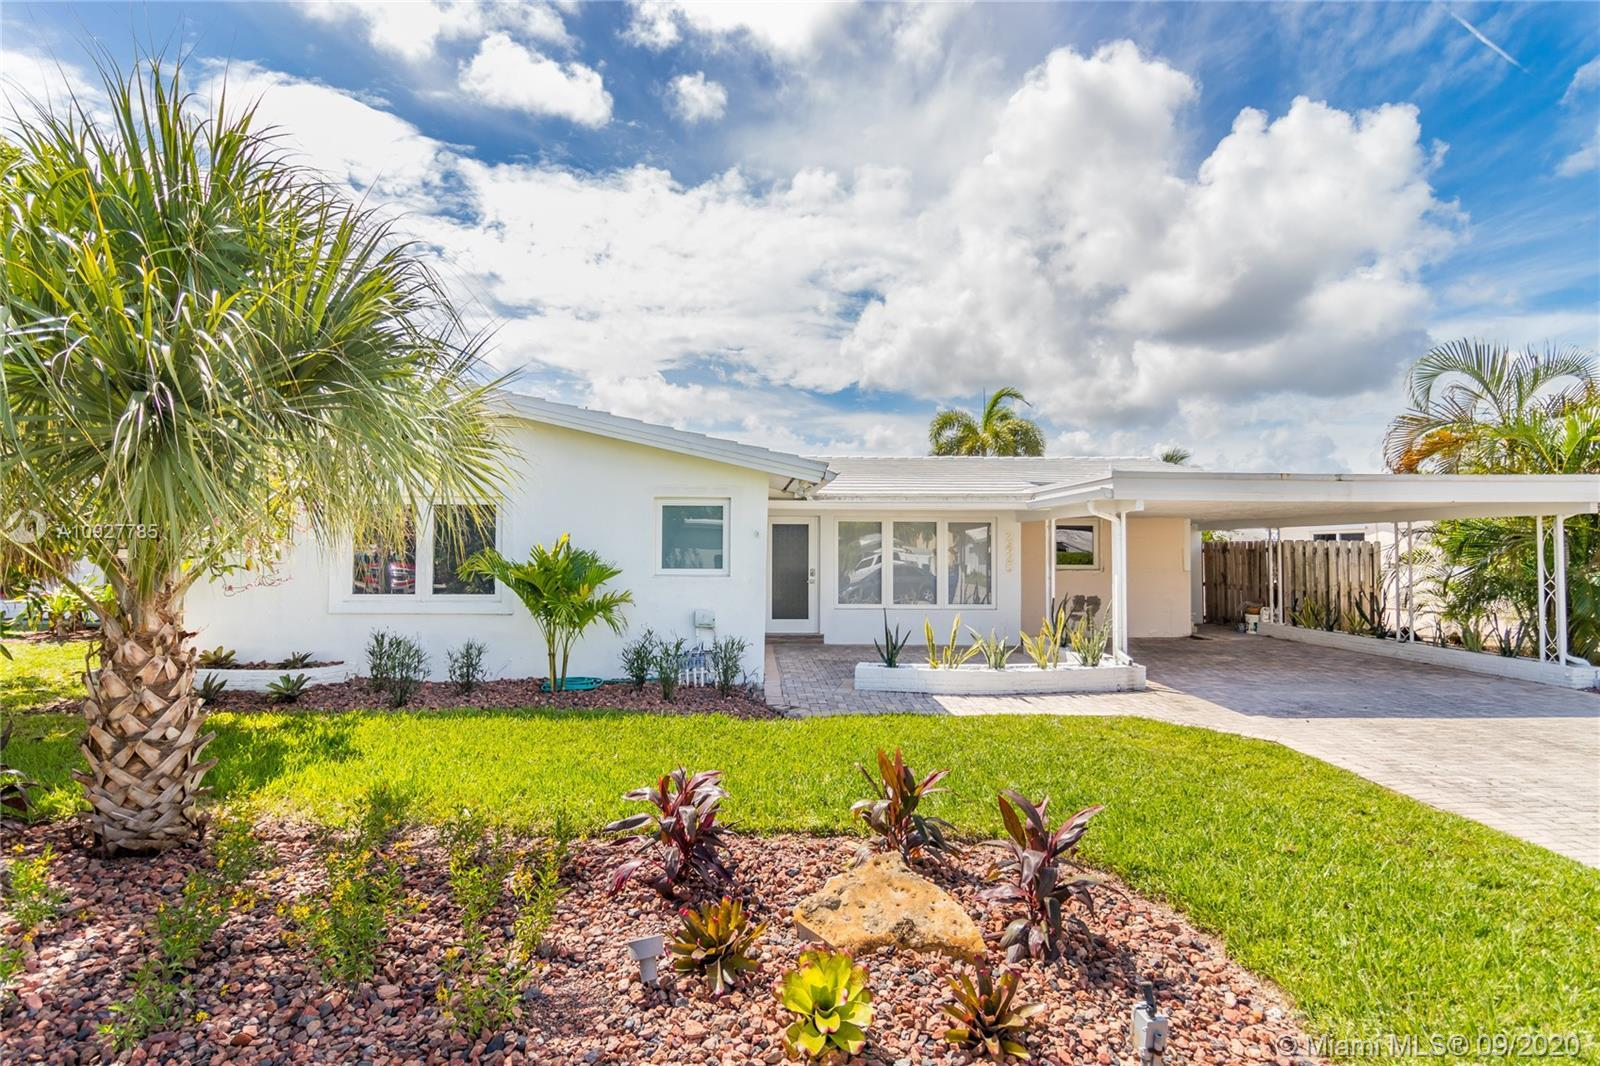 Completely updated 3/2 waterfront home in the sought after East Wilton Manors neighborhood. This ama